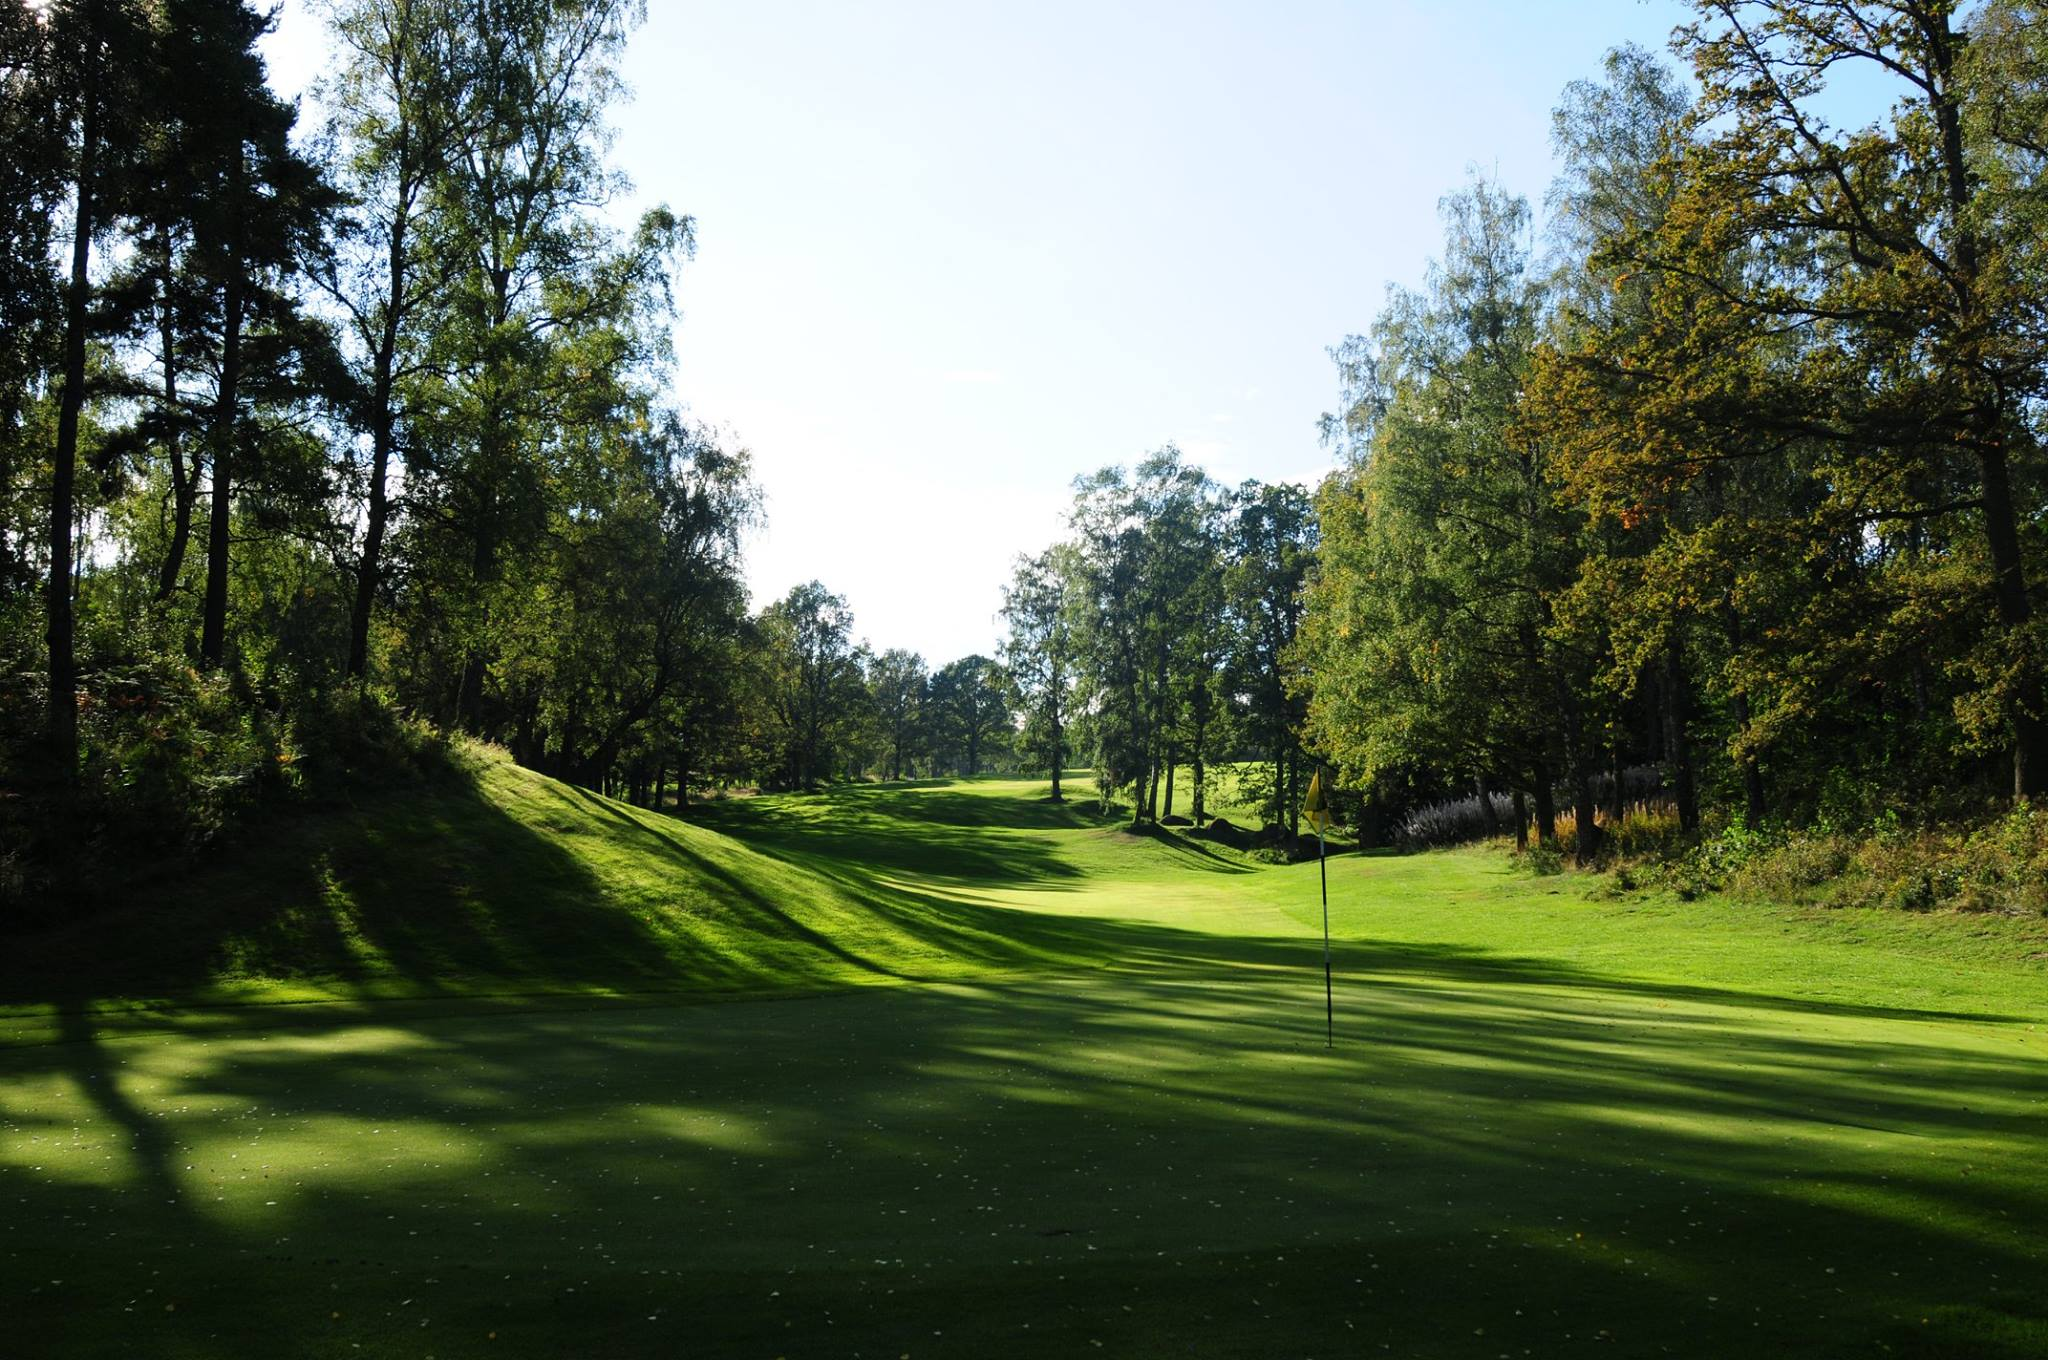 Overview of golf course named Hokensas Golfklubb